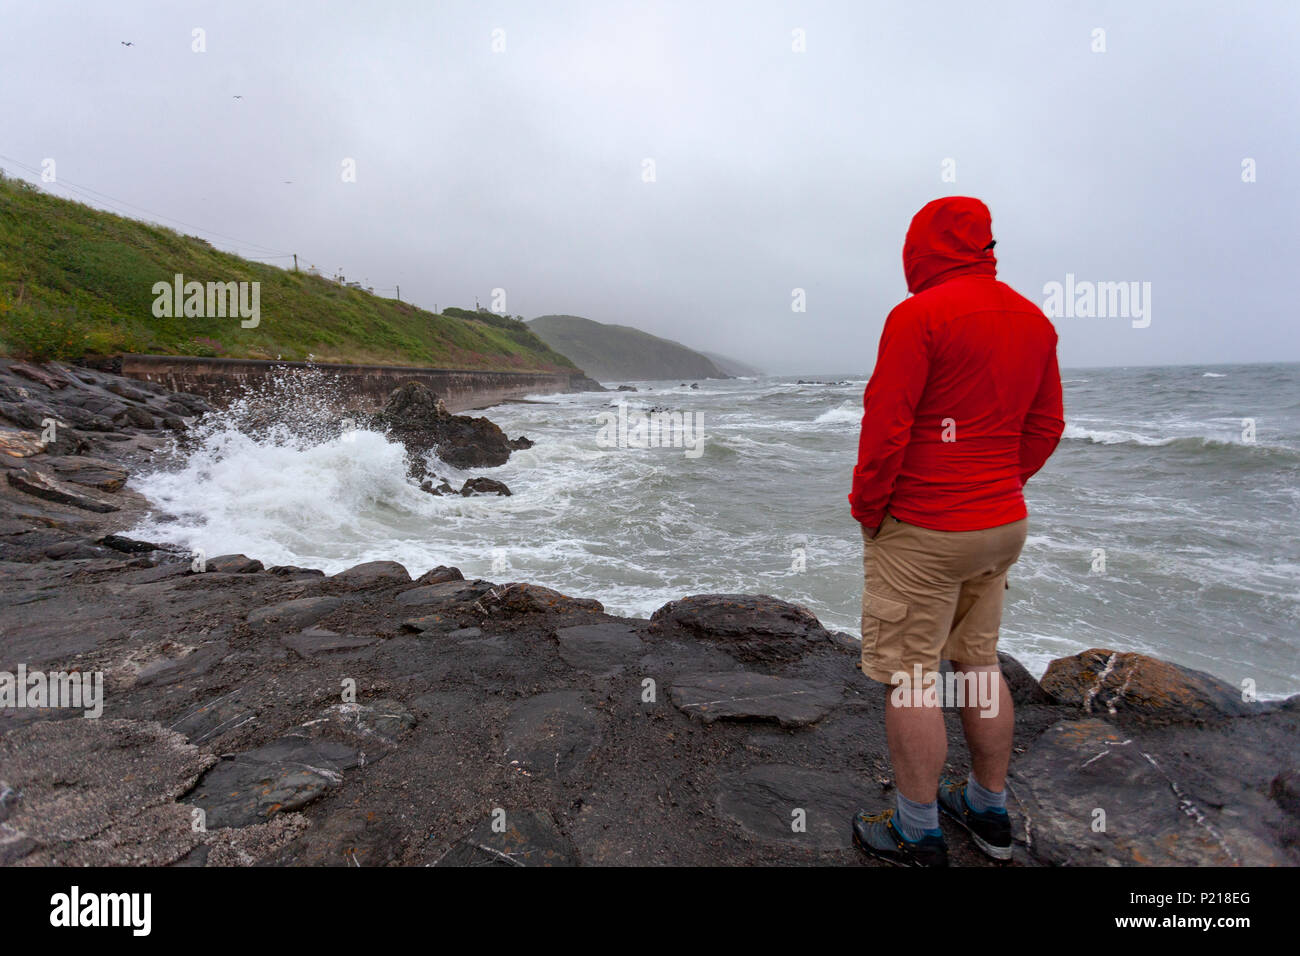 Rame Peninsula, Cornwall, England, 14th June 2018. UK Weather – The Met Office named storm, Storm Hector crashes into the UK unusual for this time of the year with winds up to 70mph. Storm Hector crashes into Cornwall with high winds and tides along the Cornish Coast at the harbour at Portwrinkle as a storm watcher watches waves crashing over the harbour wall, Cornwall © DGDImages/AlamyNews - Stock Image